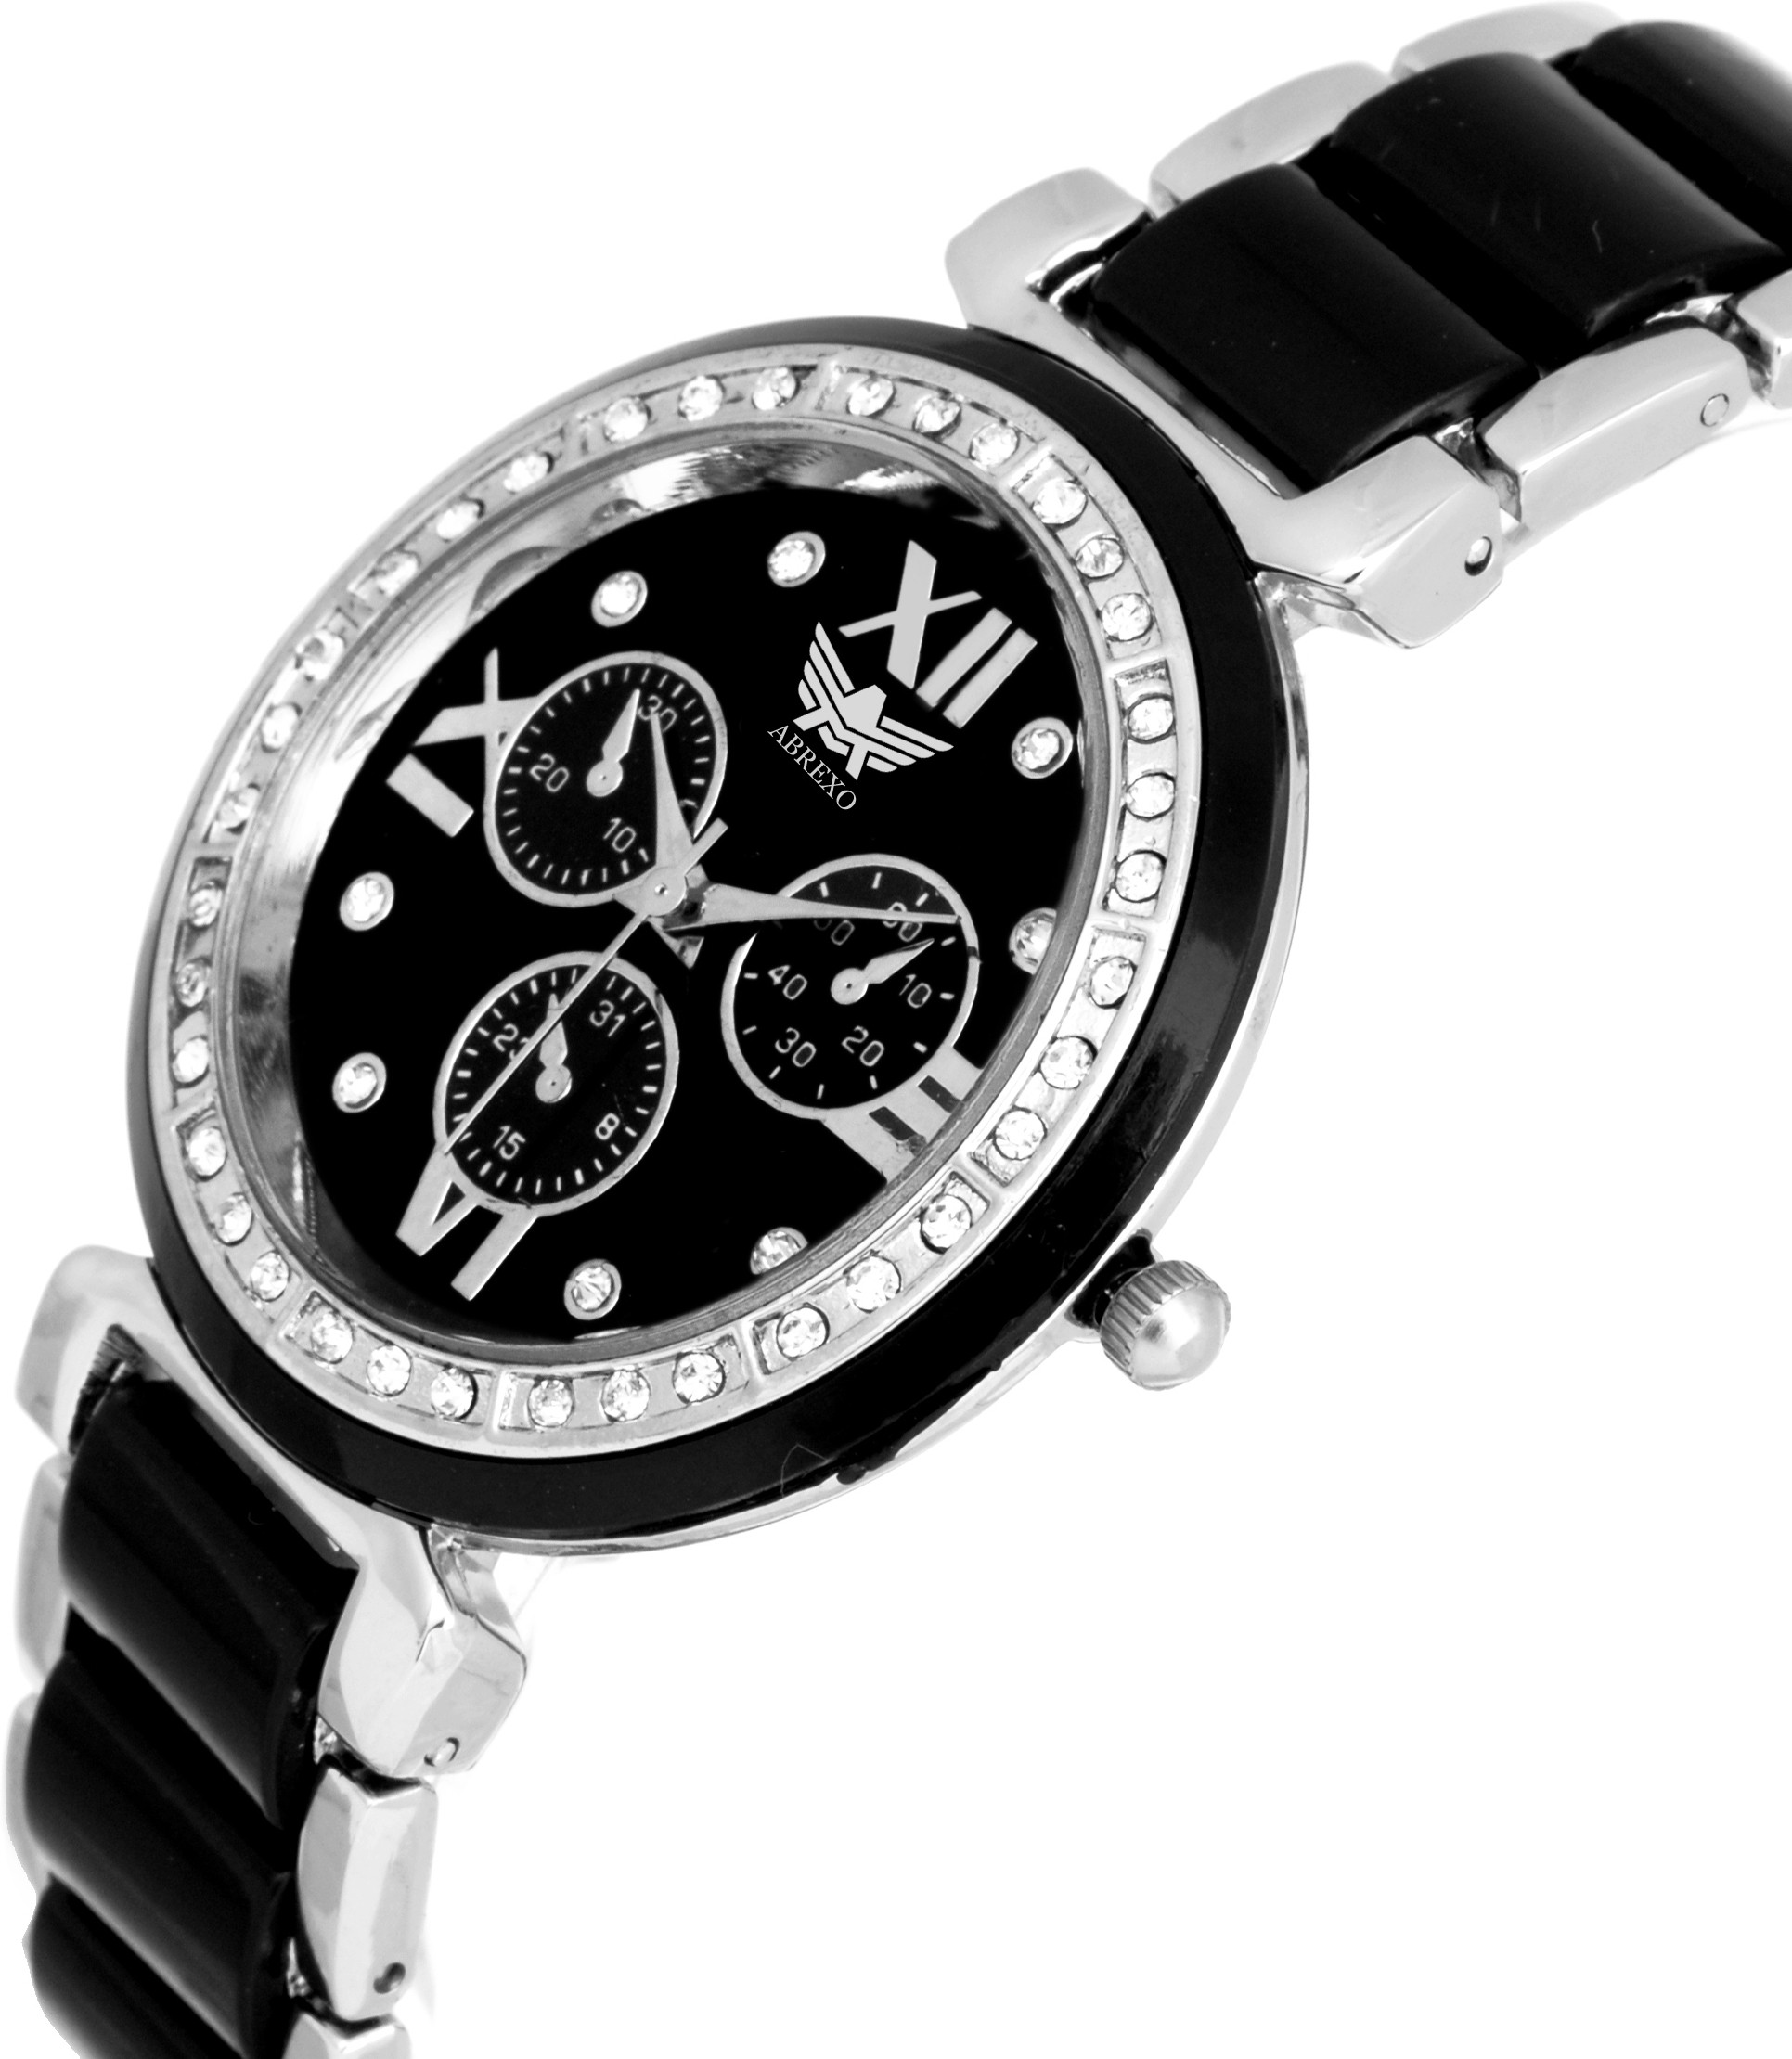 Deals - Delhi - Under Rs. 499 <br> Watches<br> Category - watches<br> Business - Flipkart.com